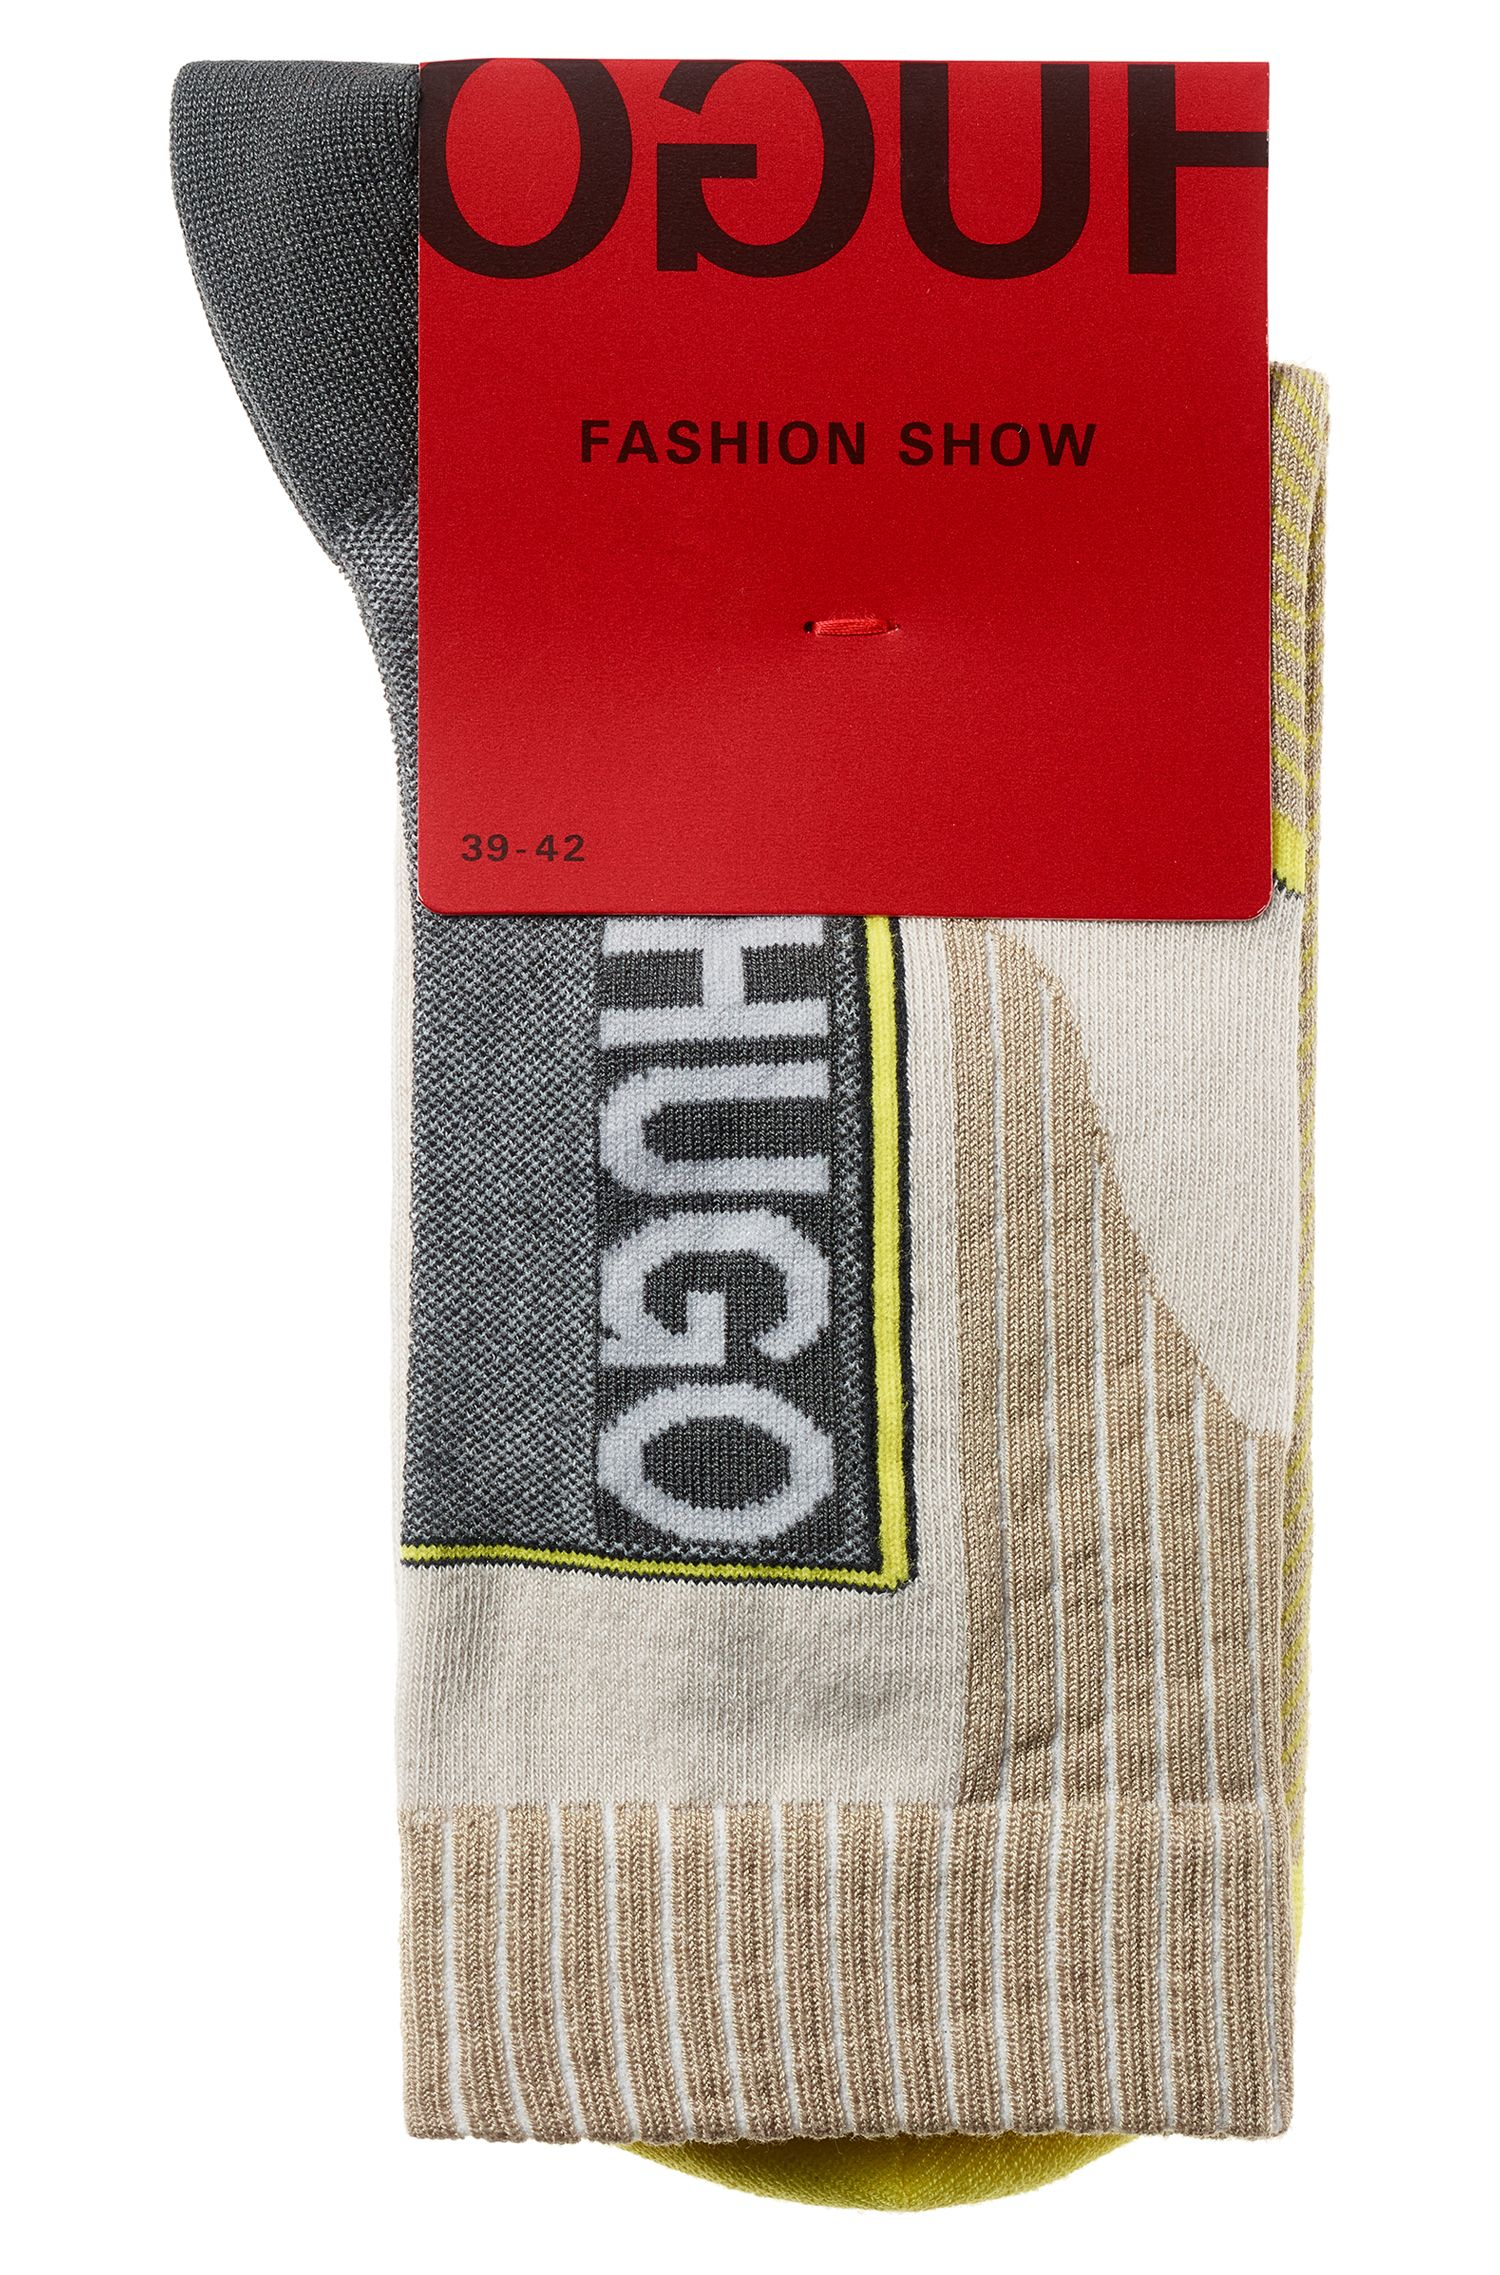 Fashion Show logo socks in a stretch-cotton blend, Patterned